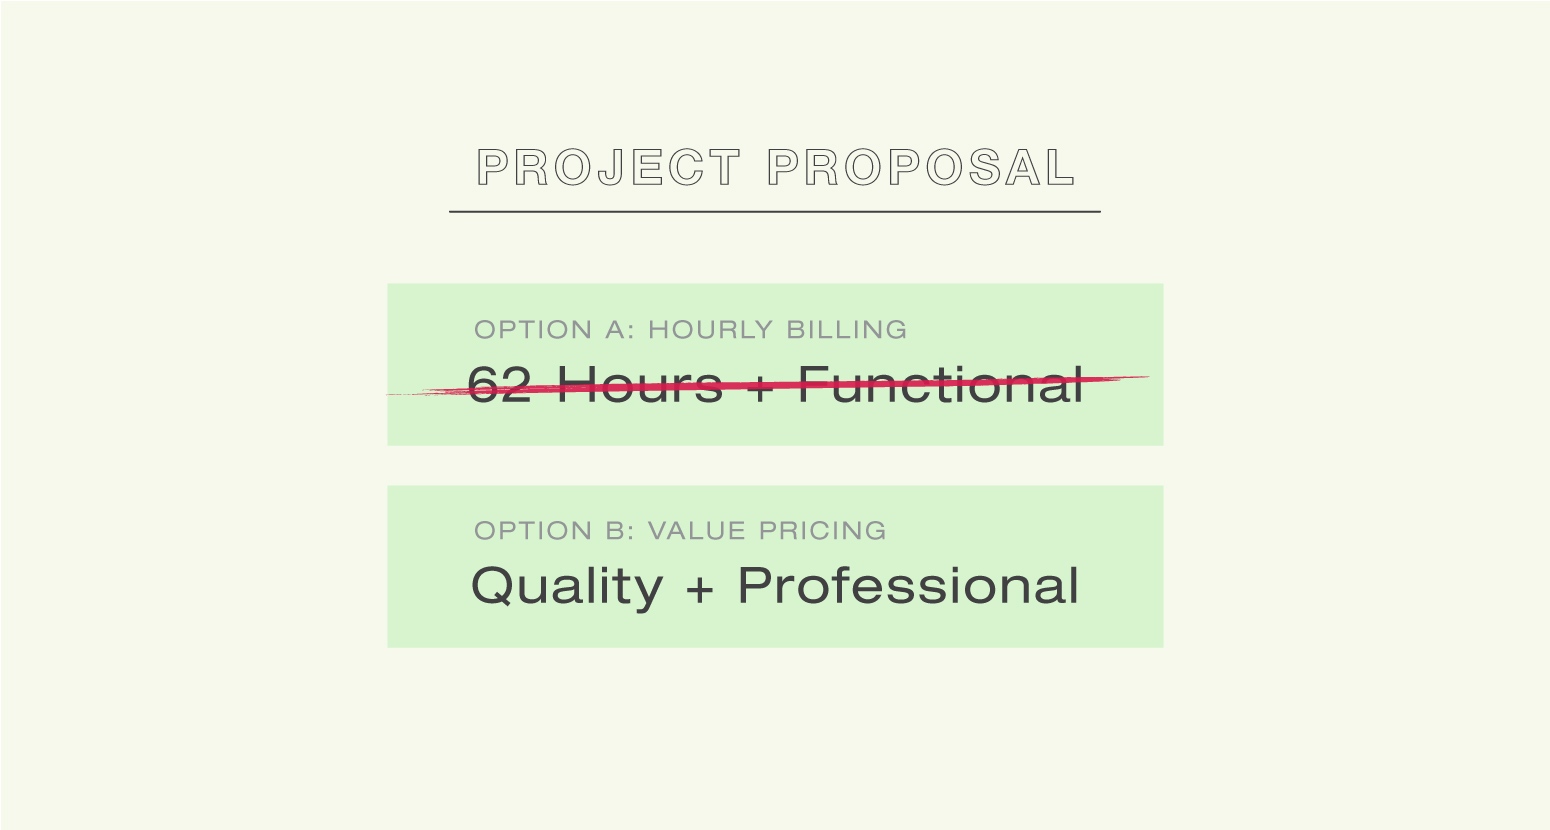 Value Pricing vs Hourly Billing